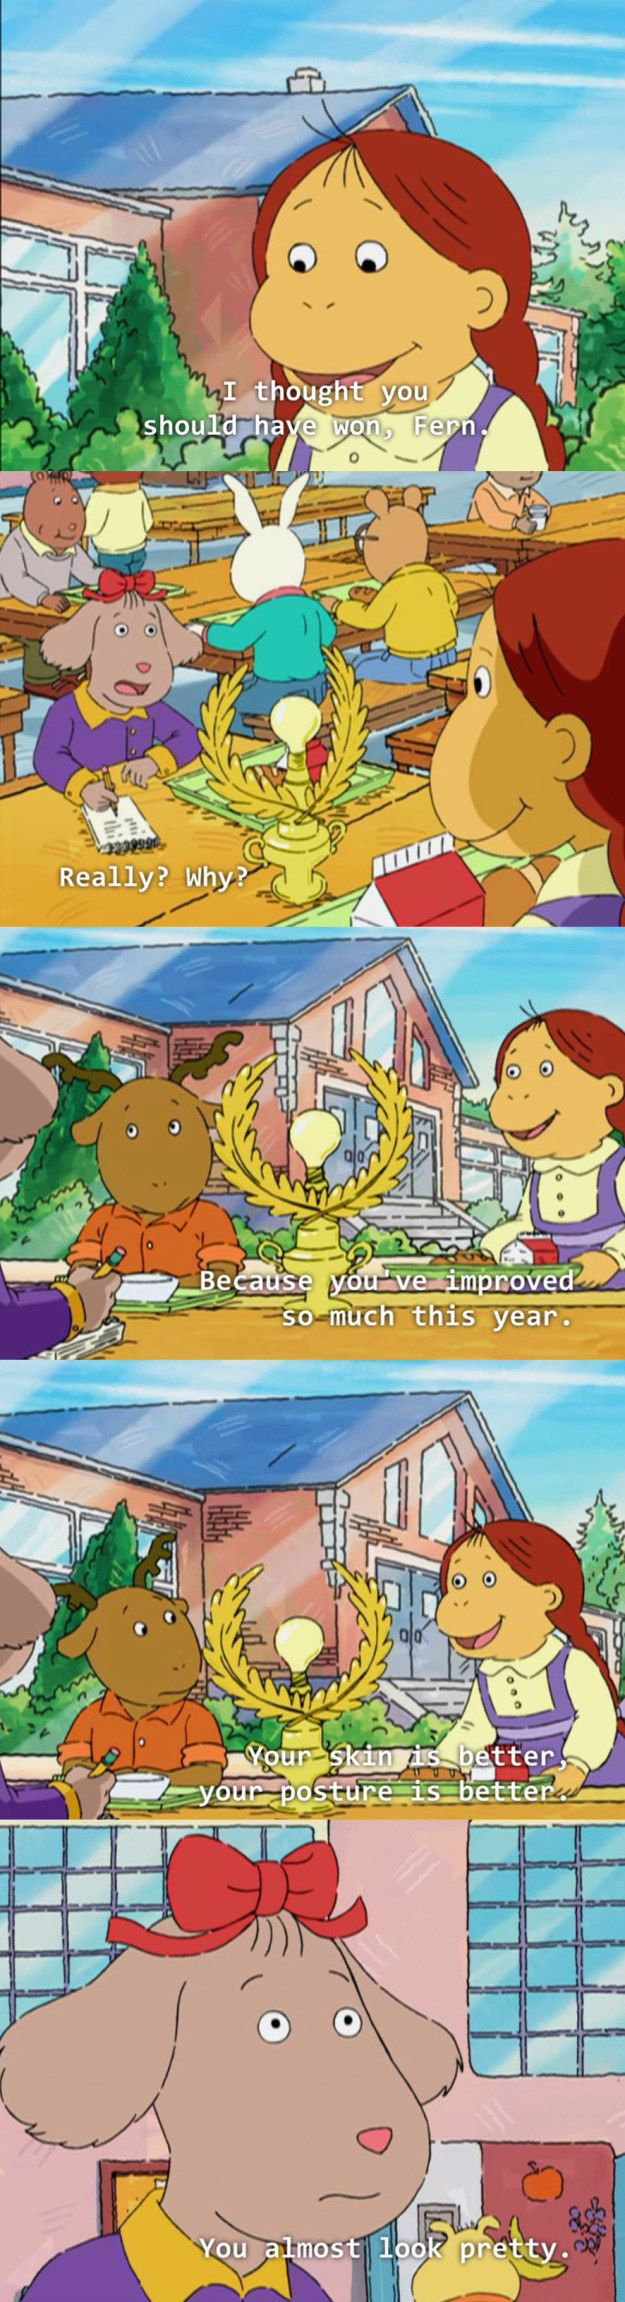 """When she straight up dissed Fern's aesthetic. 